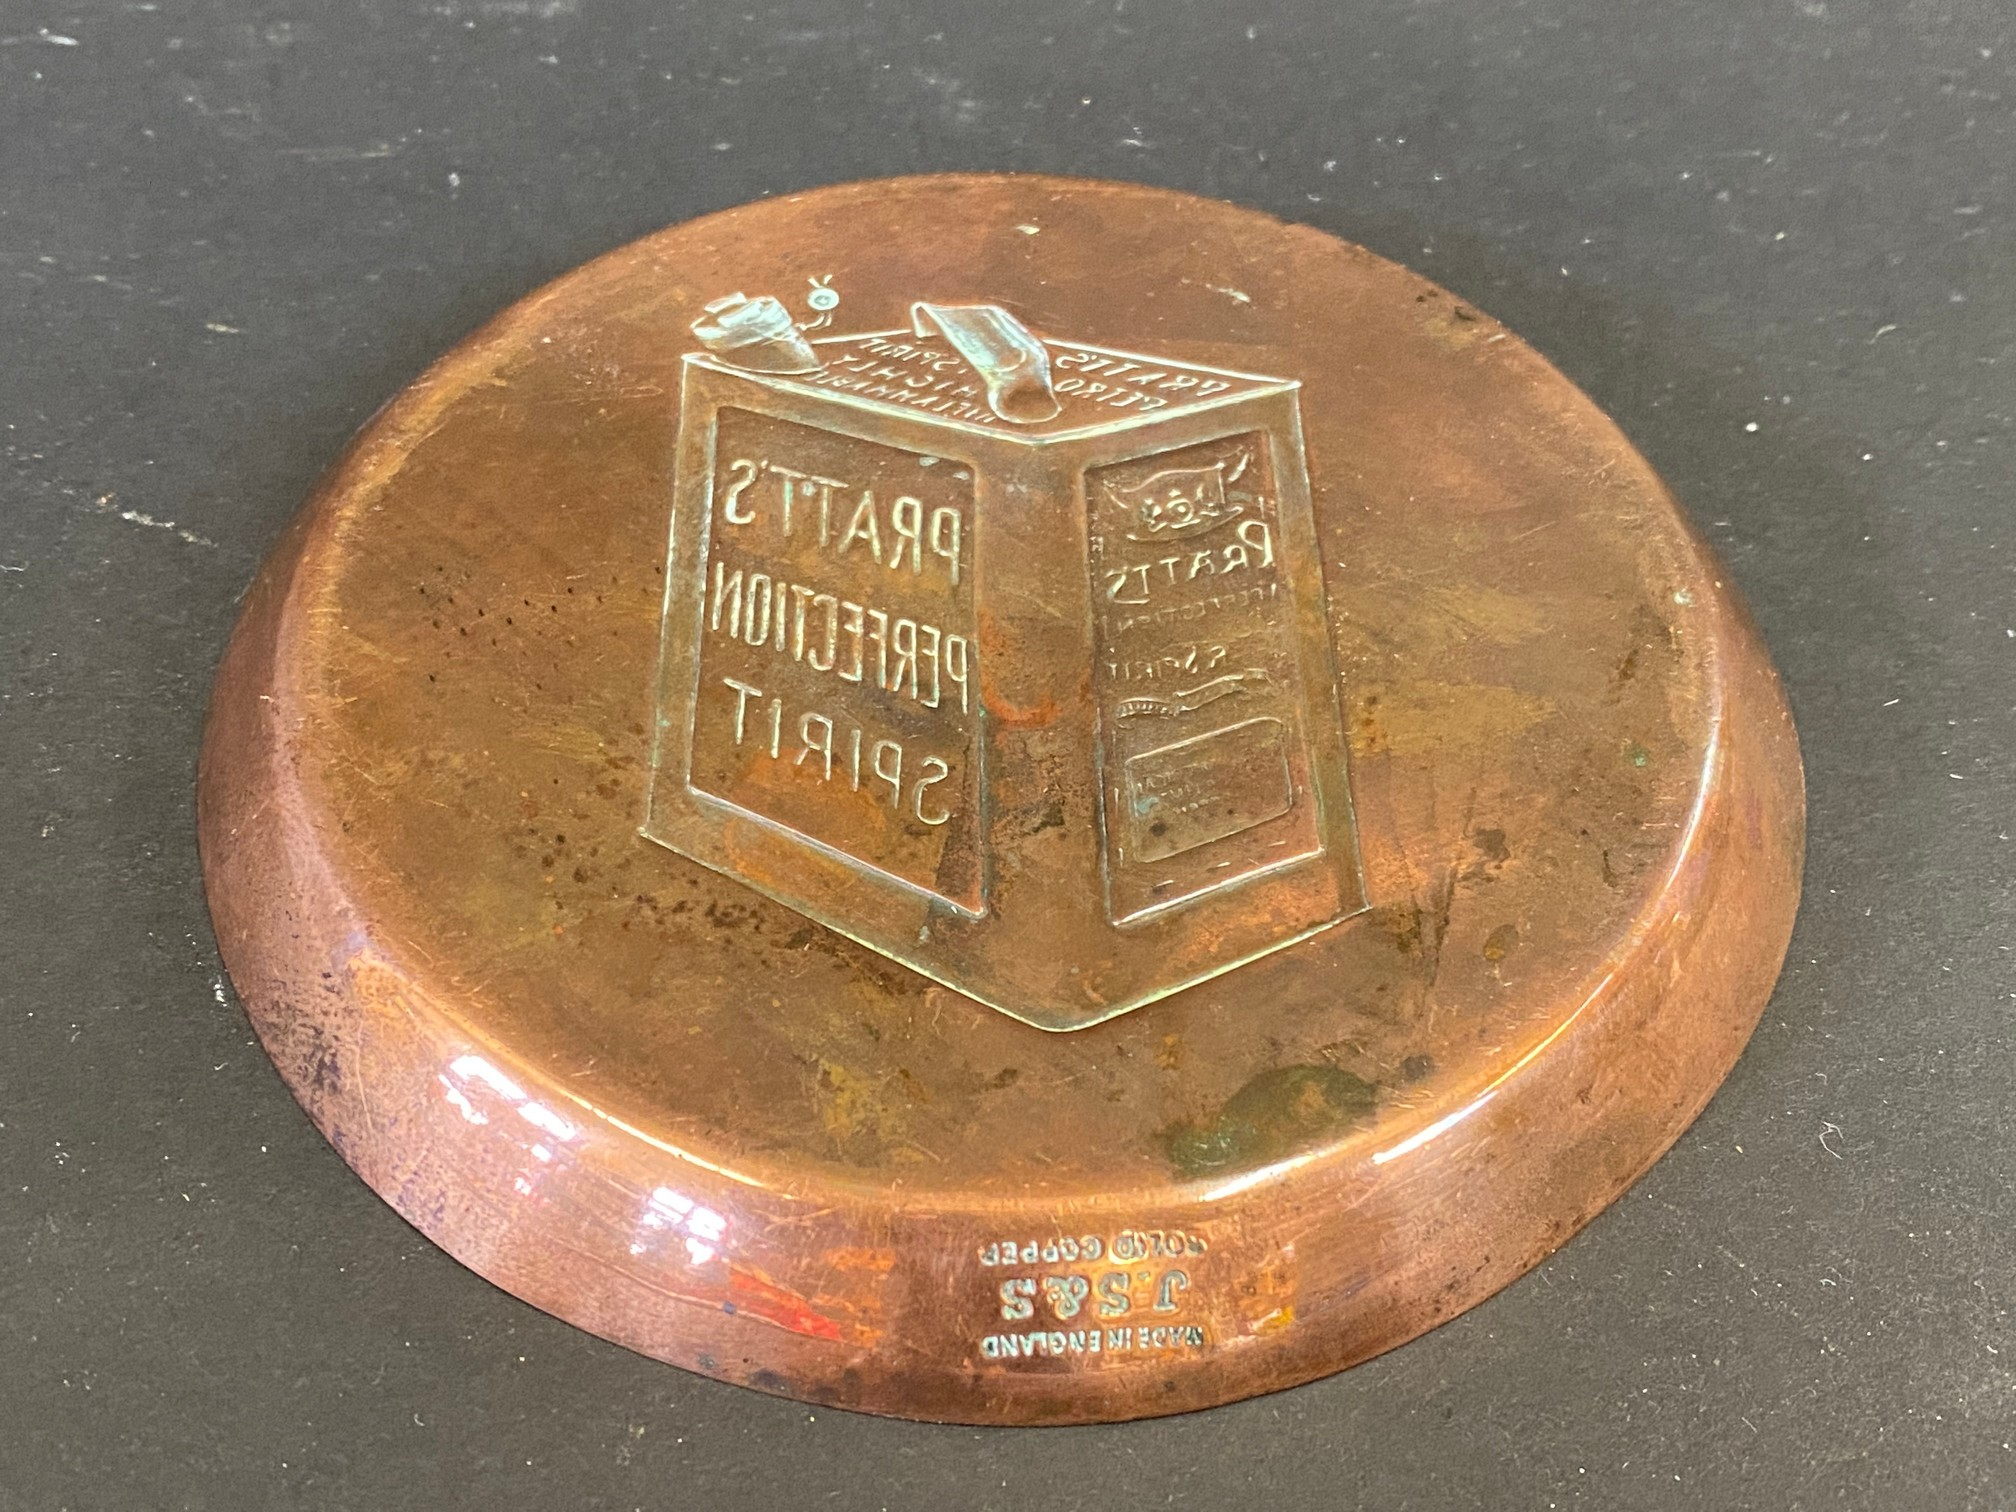 A copper ashtray advertising Pratt's Perfection Spirit, stamped J.S&S. - Image 2 of 2